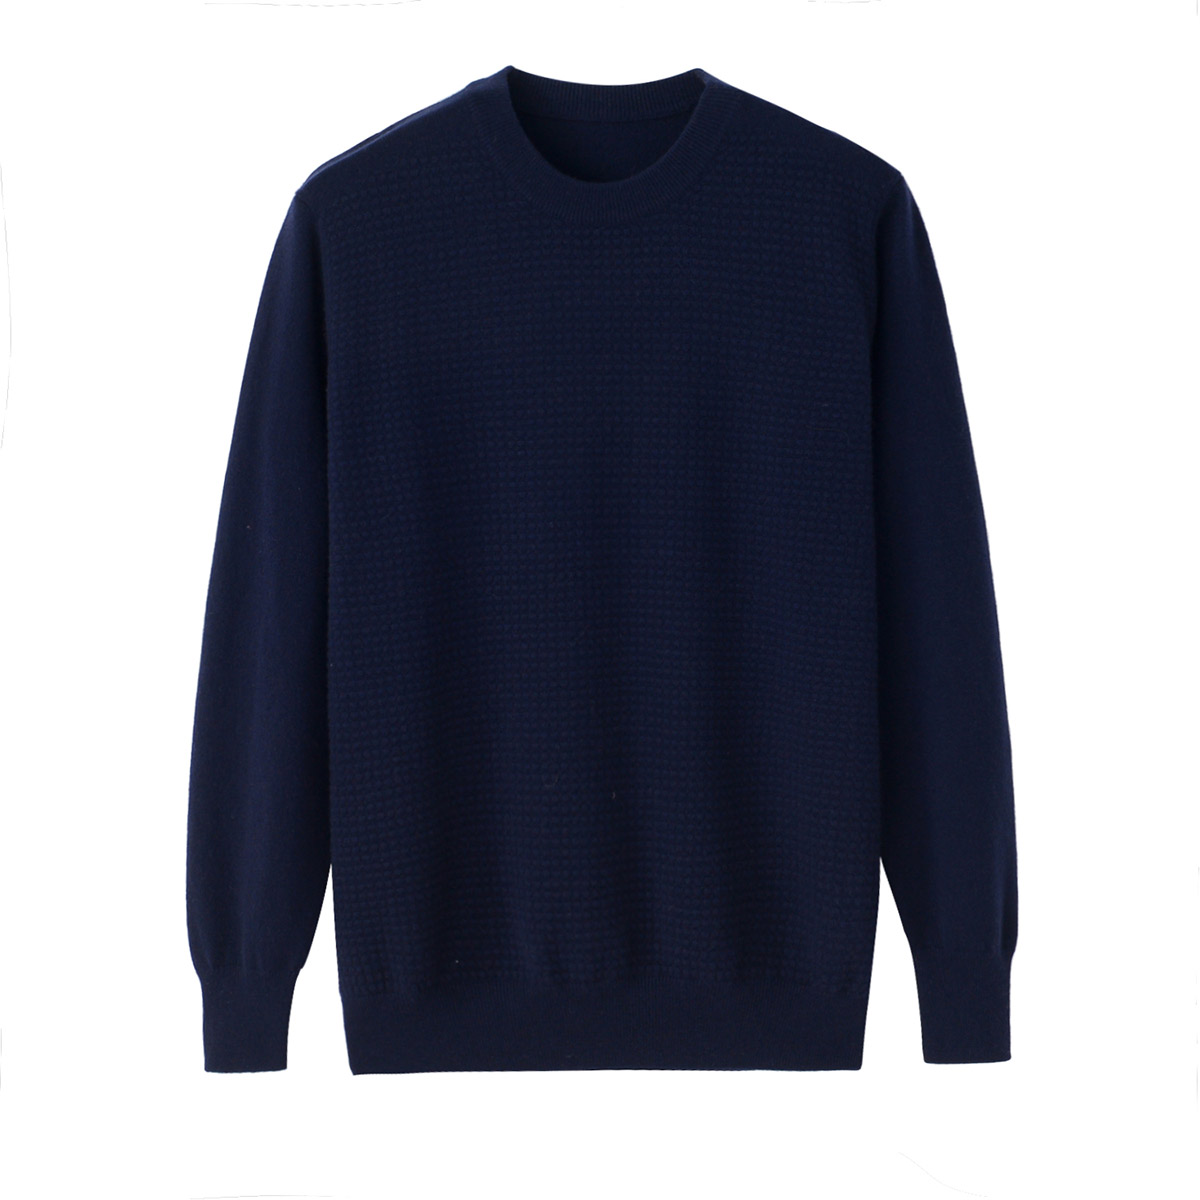 2017 new cashmere sweater mens round neck honeycomb thickening solid color simple knitting loose bottomed sweater autumn and winter